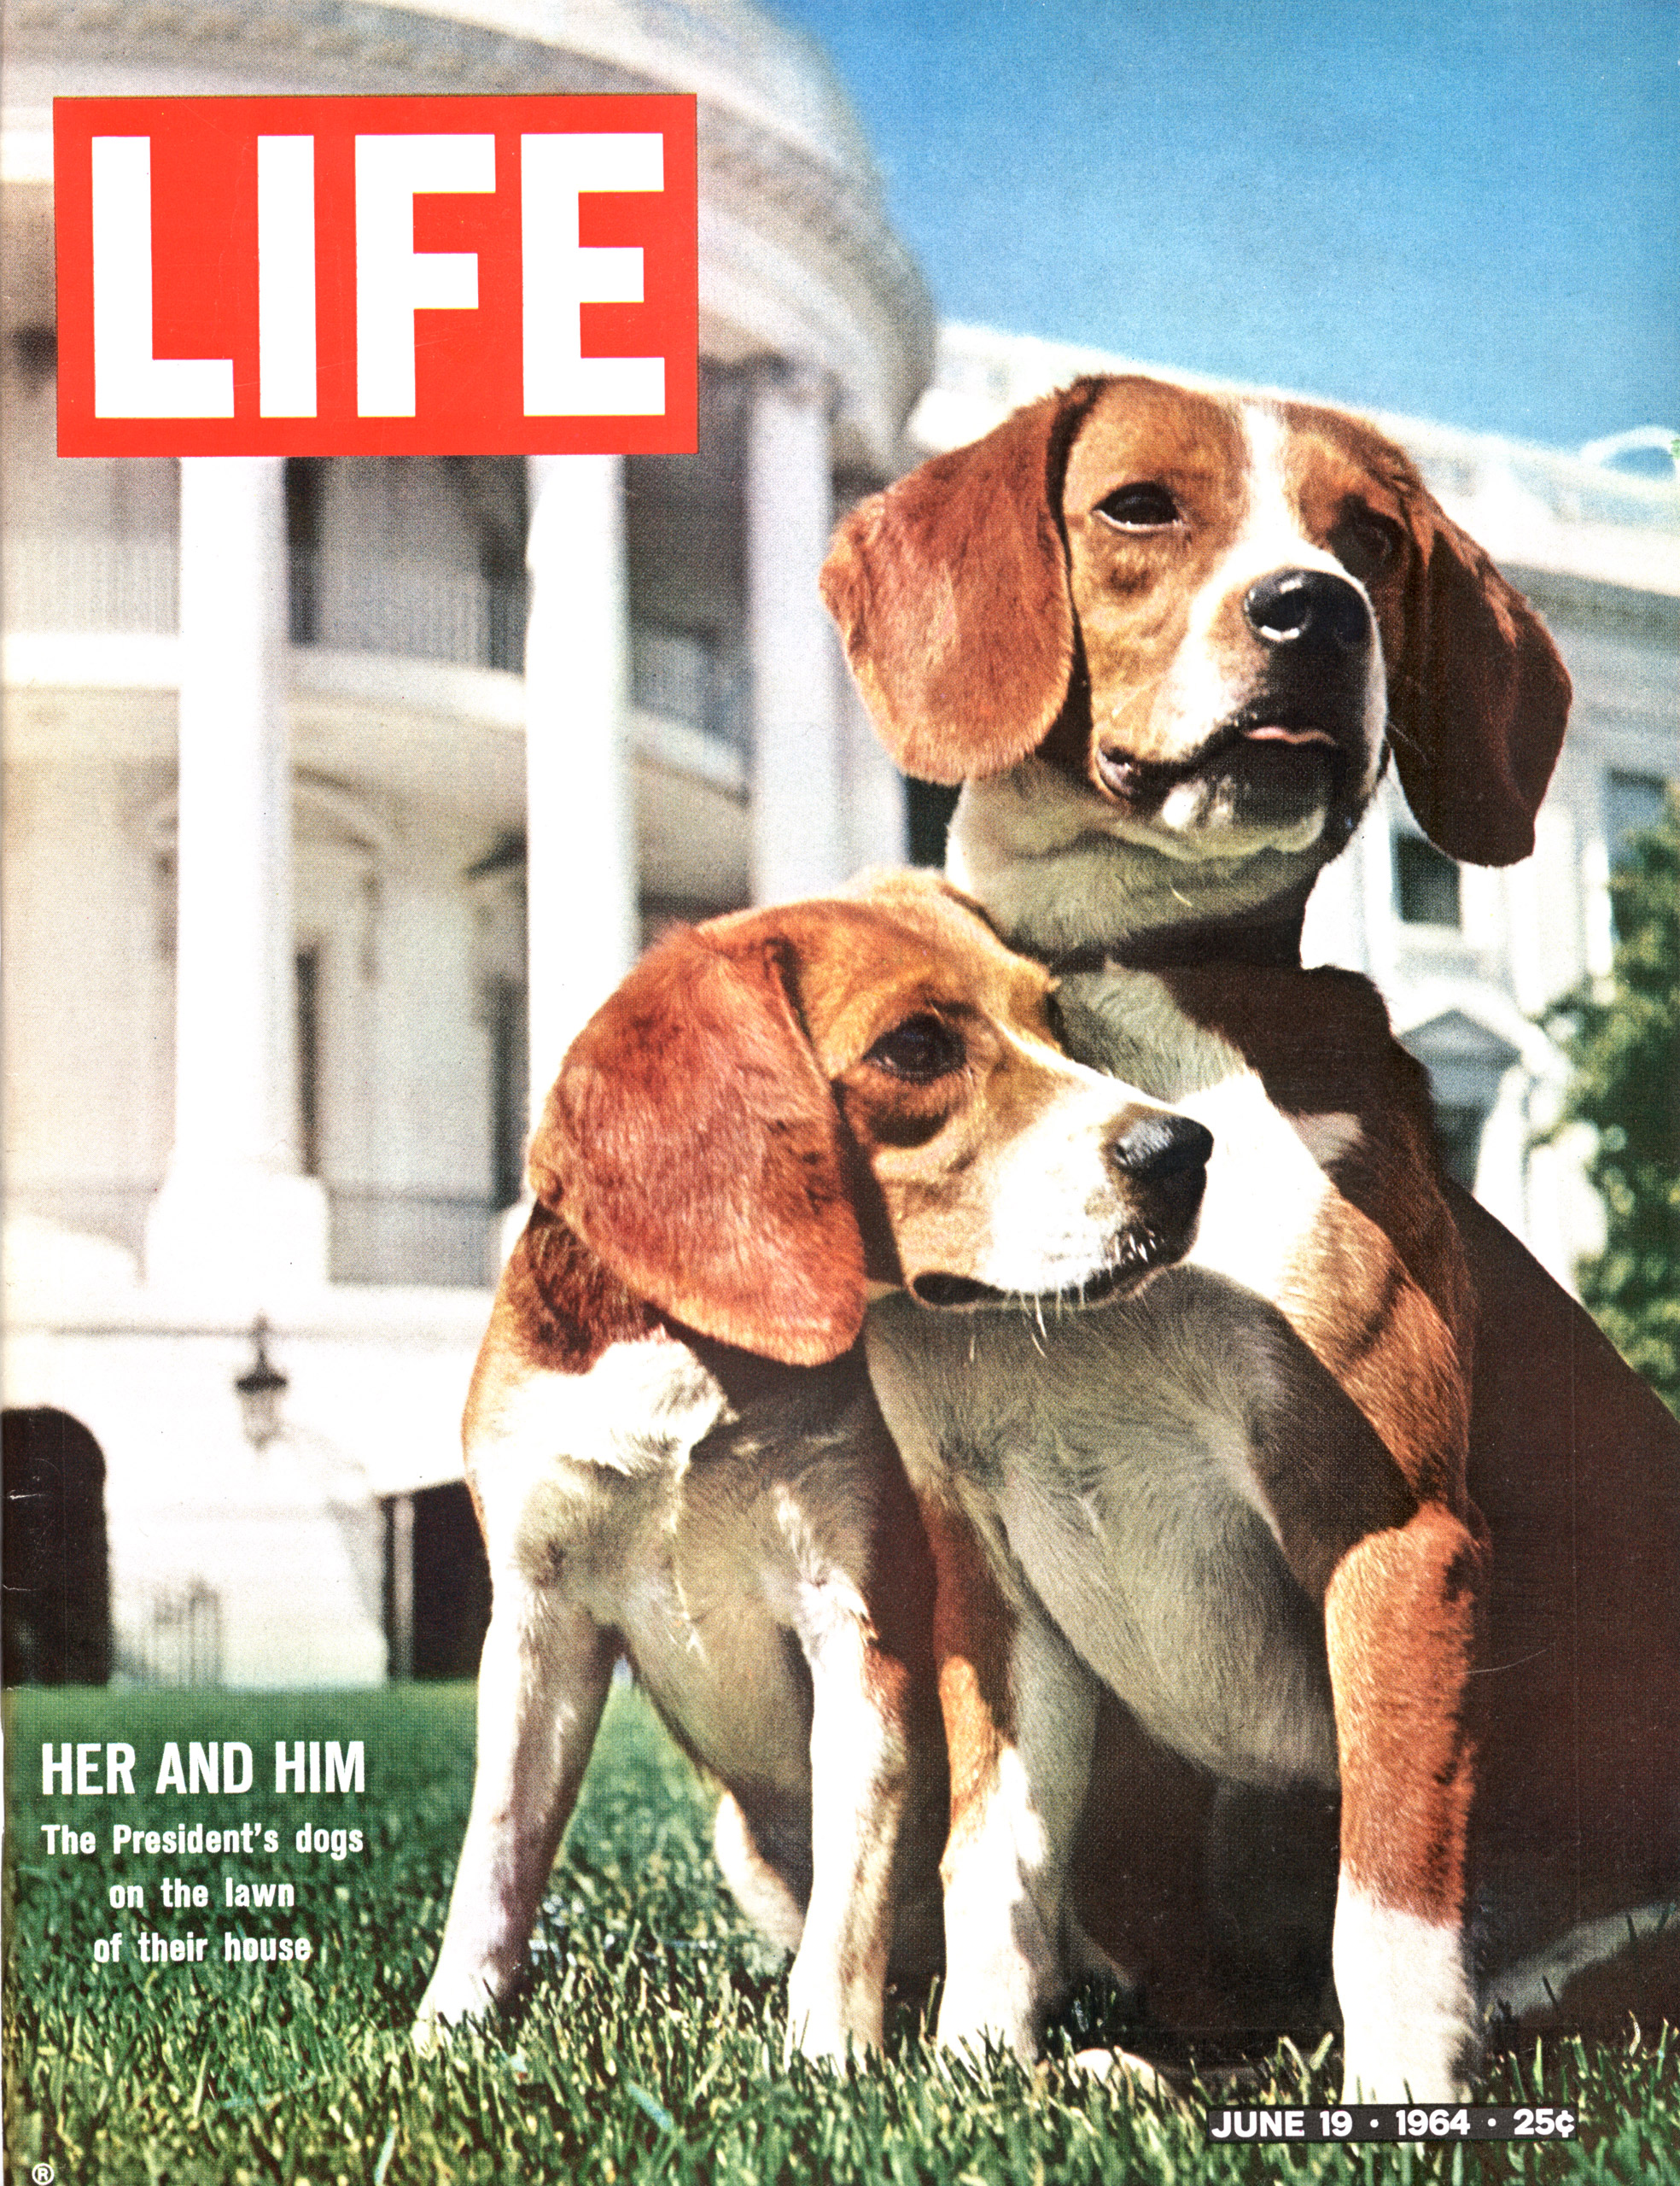 June 19, 1964 LIFE Magazine cover (photo by Francis Miller).